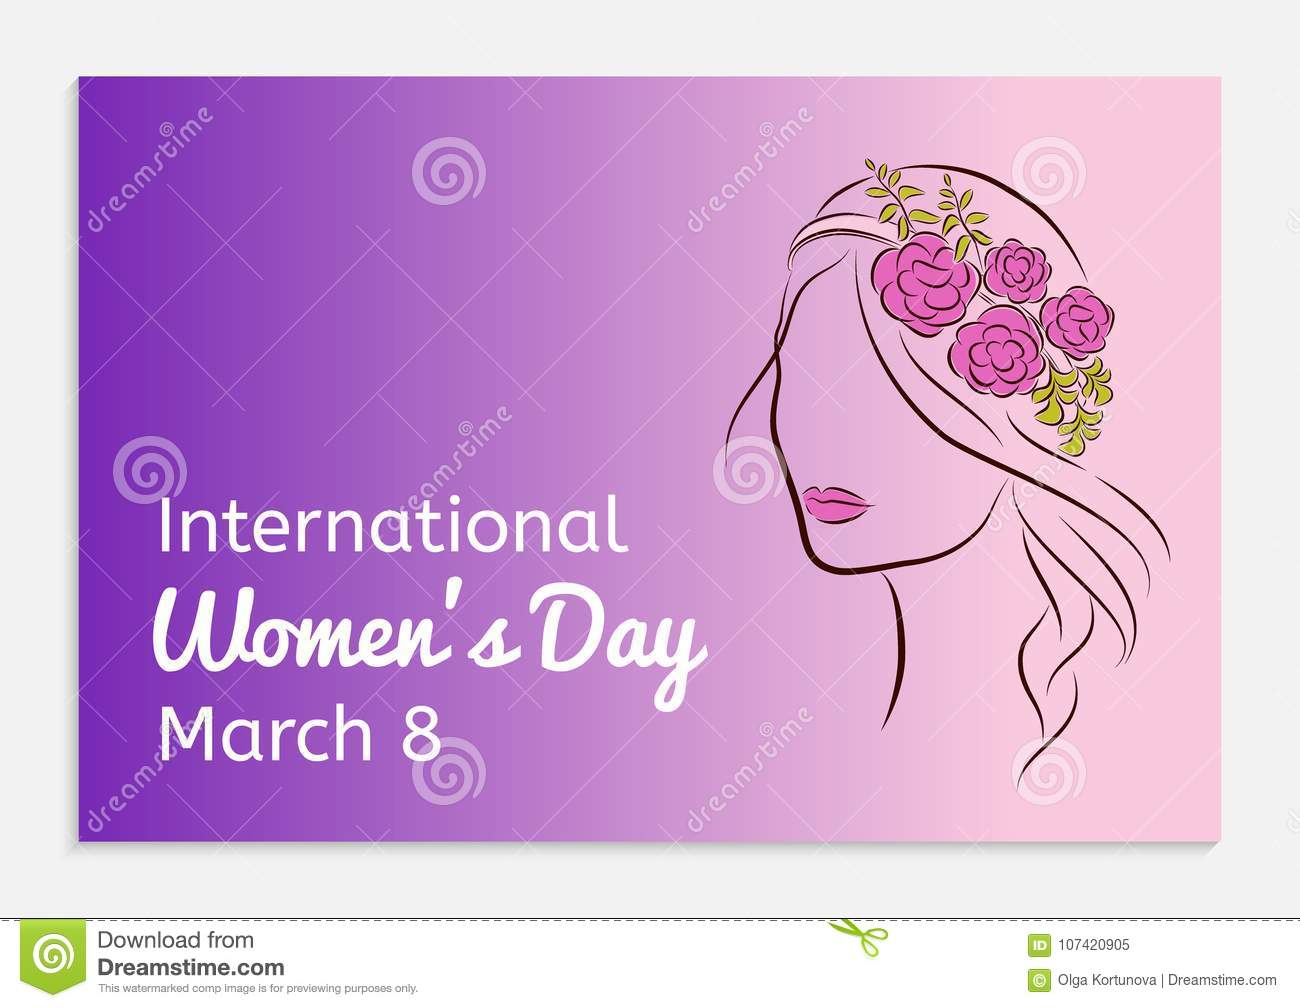 International womens day greeting card silhouette of a beautiful international womens day greeting card silhouette of a beautiful girl in a rim with flowers on her head fashionable izmirmasajfo Image collections